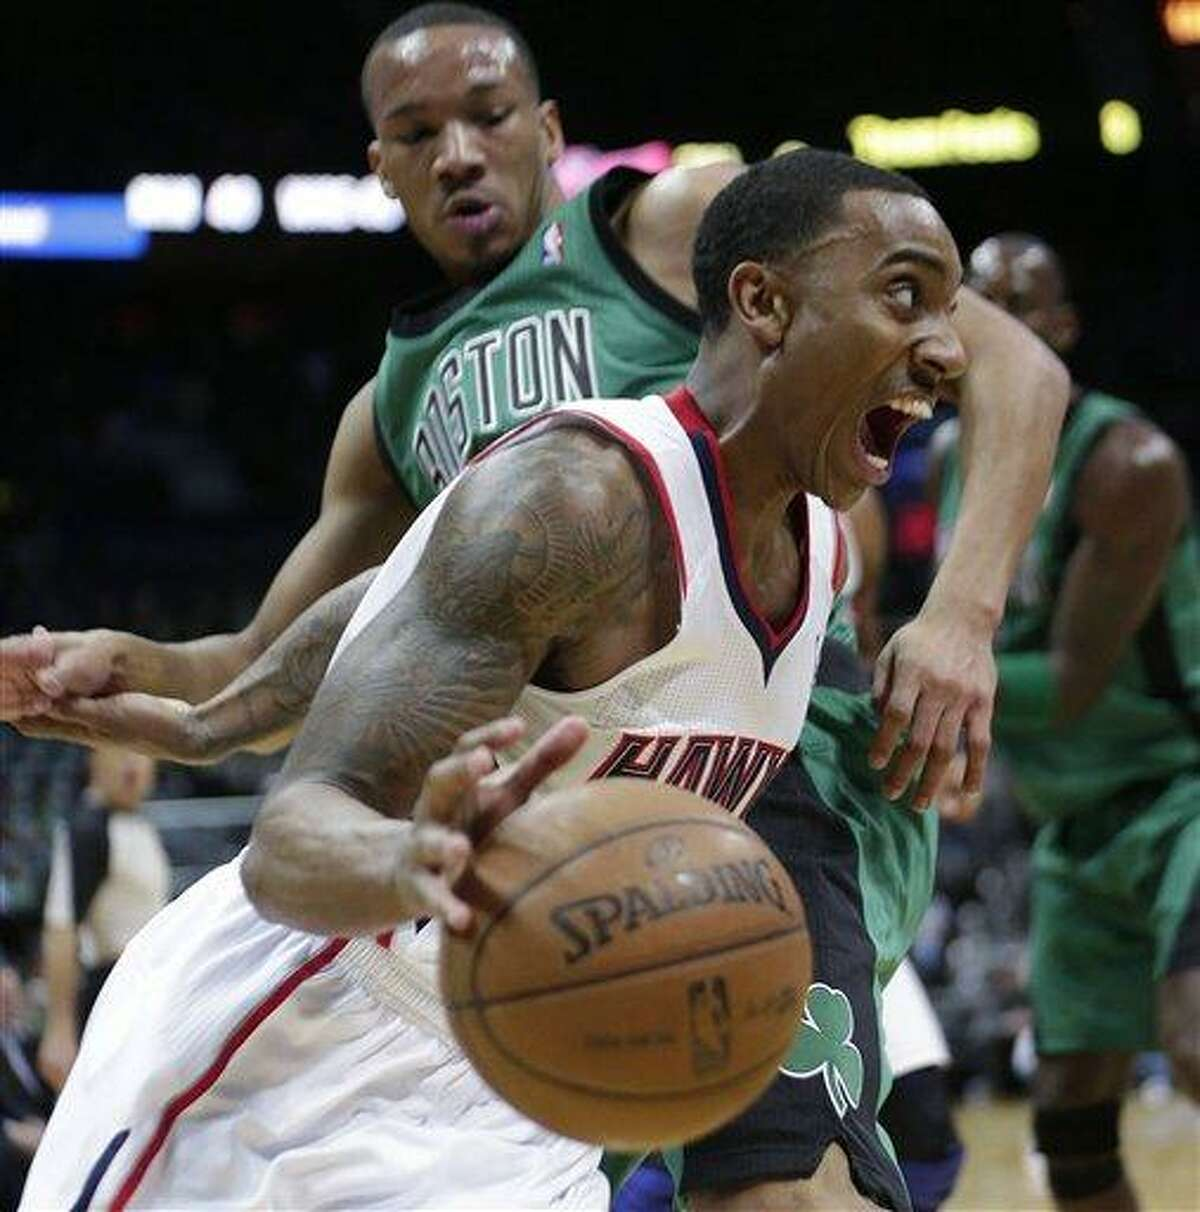 Atlanta Hawks guard Jeff Teague drives against Boston Celtics guard Avery Bradley during the first half of an NBA basketball game Friday, Jan. 25, 2013, in Atlanta. (AP Photo/John Bazemore)